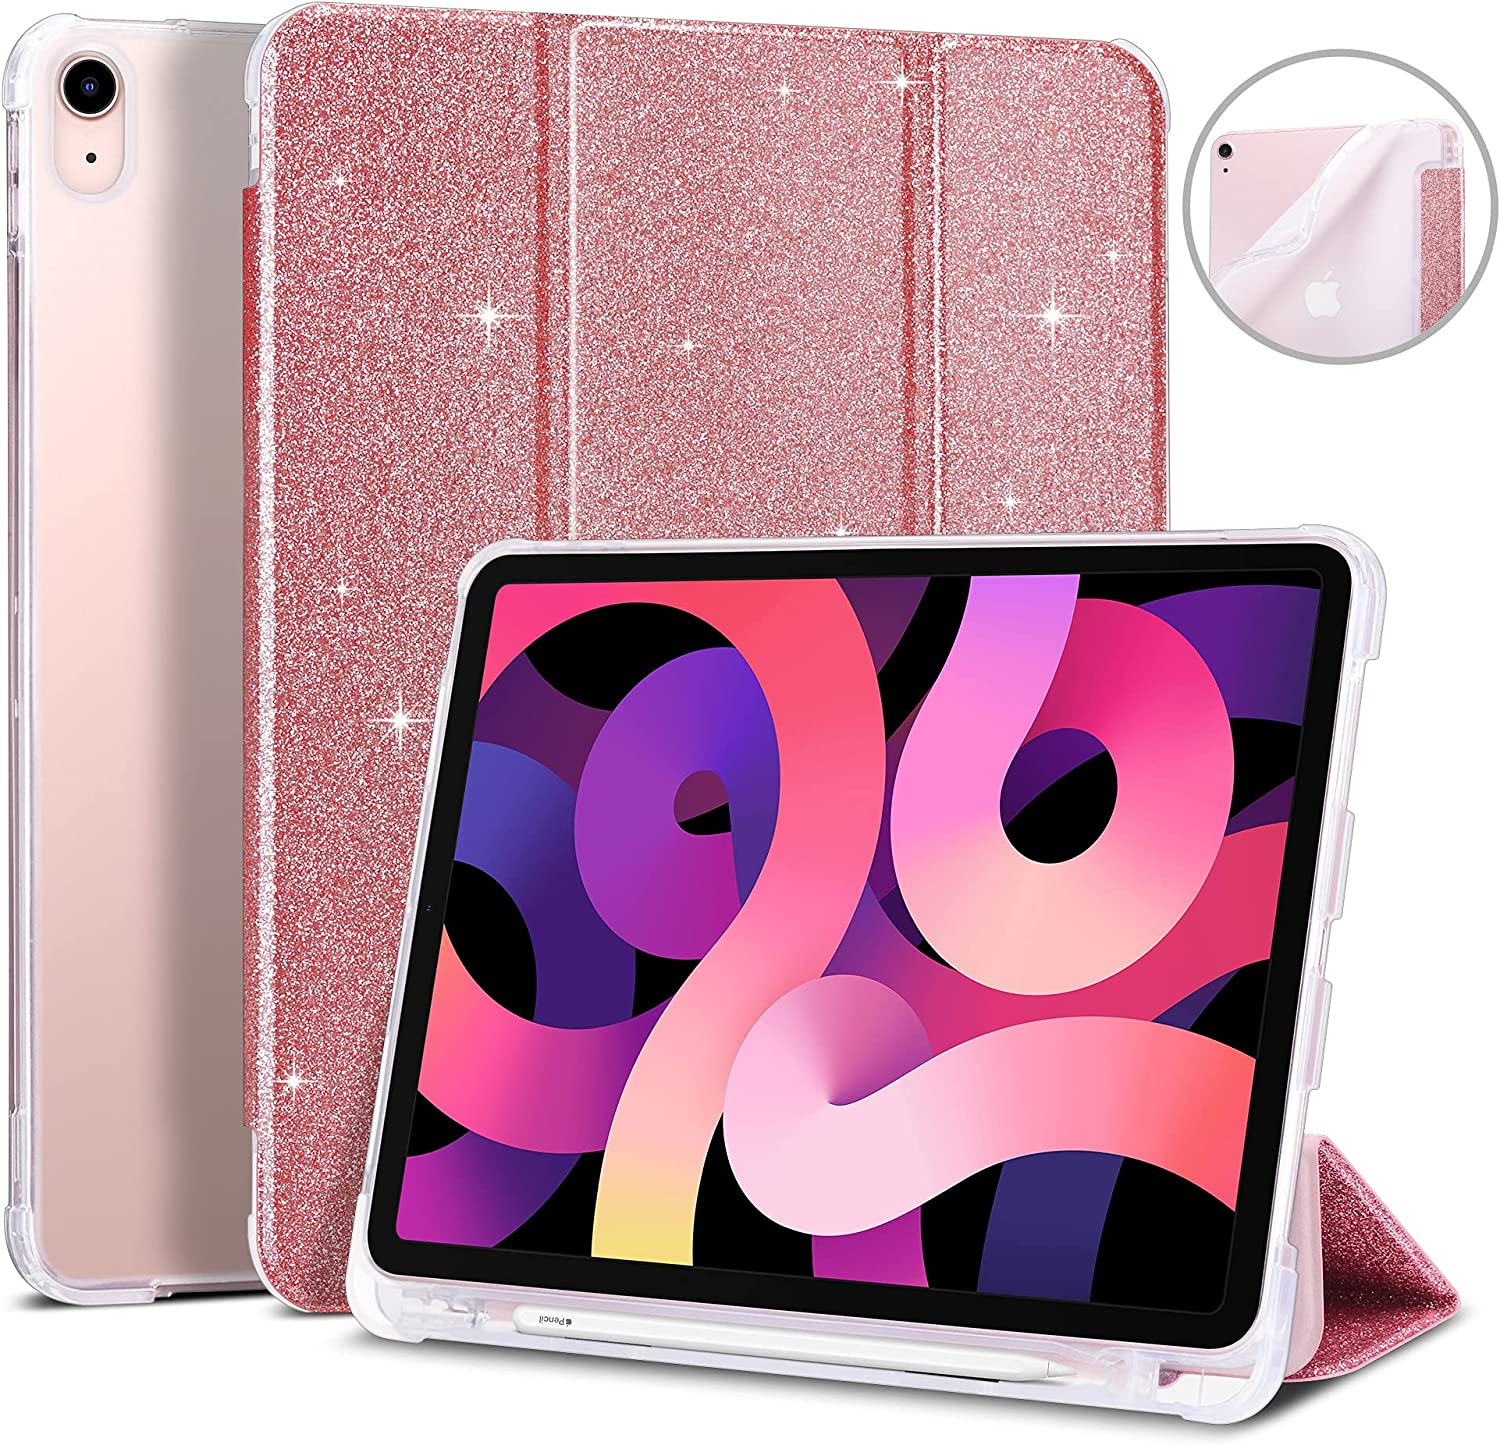 ULAK Compatible with iPad Air 4 2020 Case with Pencil Holder, Bling Sparkly Trifold Stand Smart Cover with Auto Sleep/Wake Premium Shockproof Cover for iPad Air 10.9 inch 4th Generation, Glitter Pink